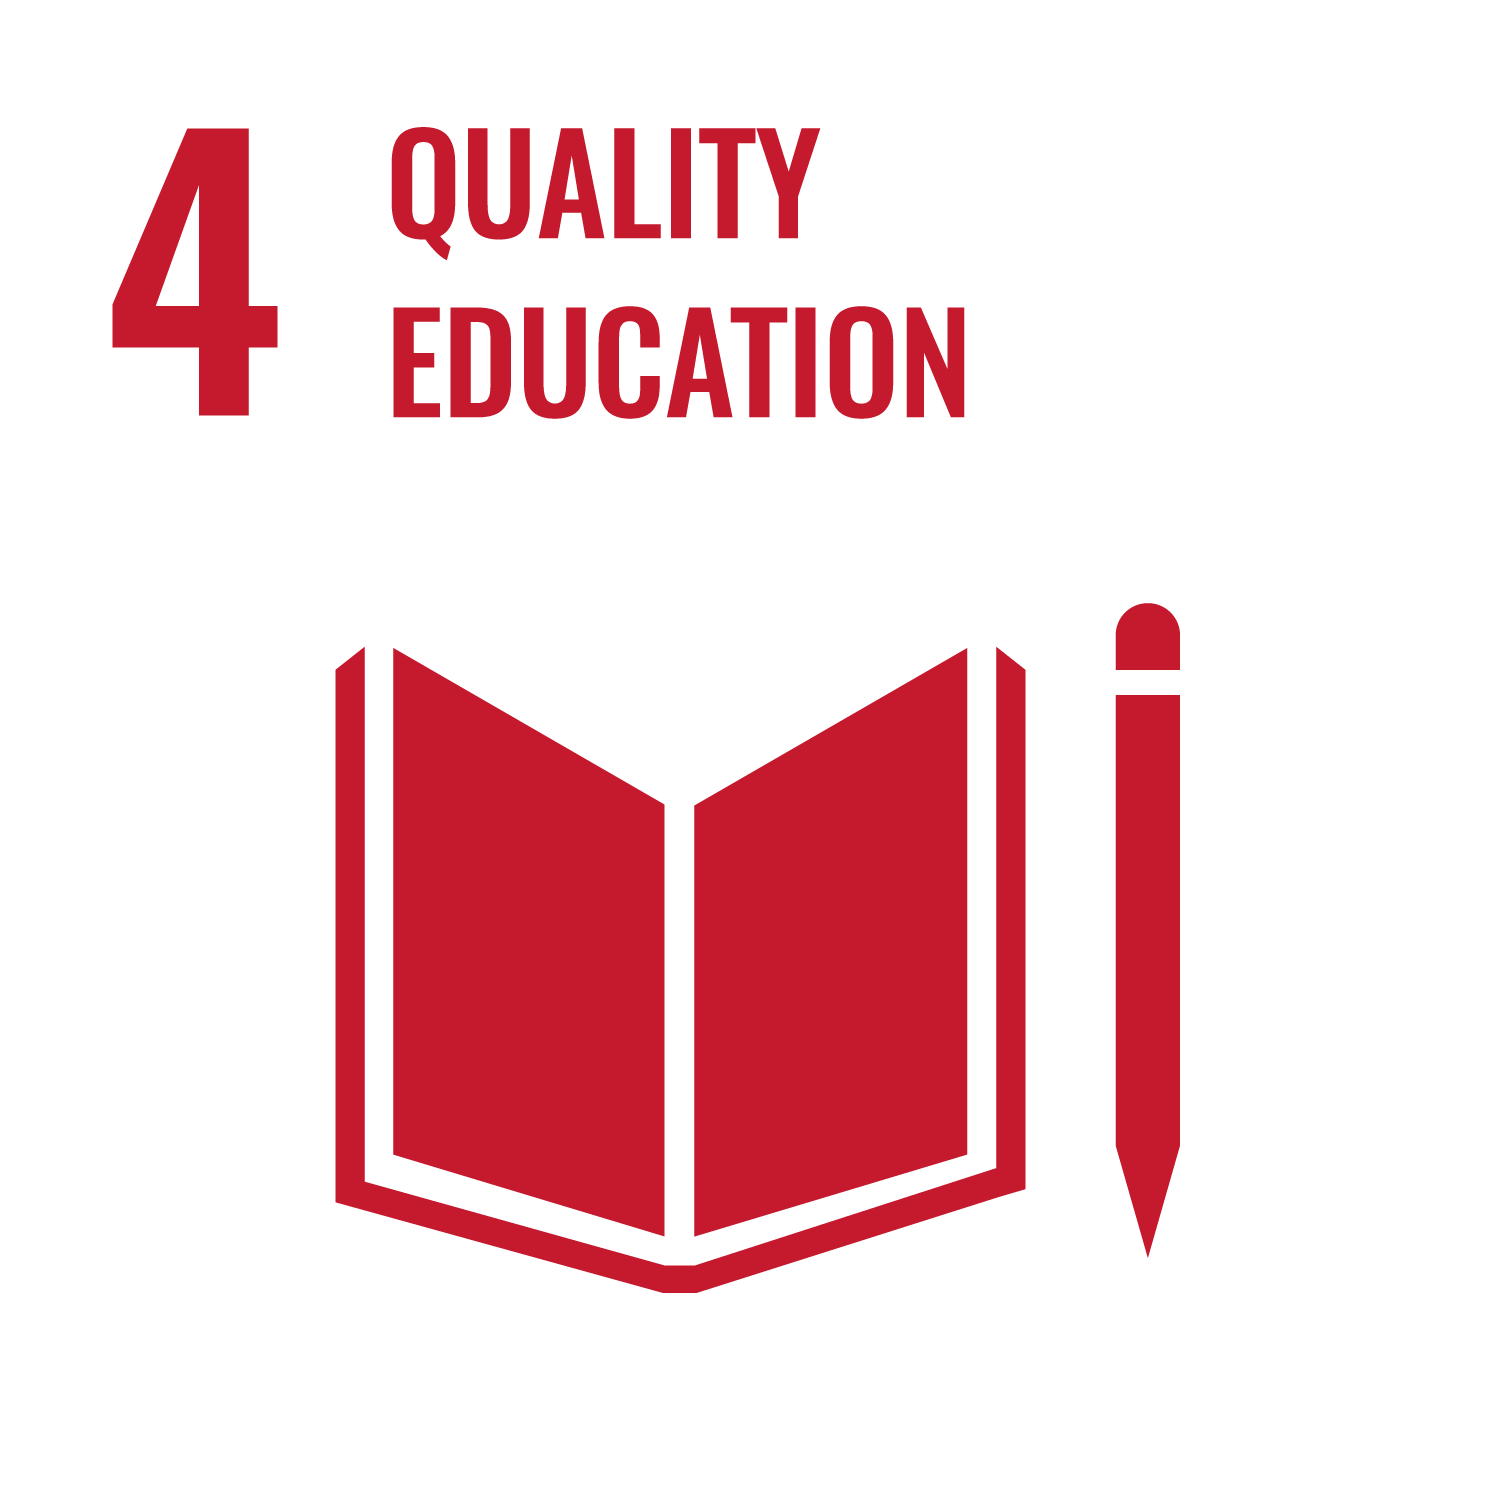 SDG Goal 4 - Quality Education